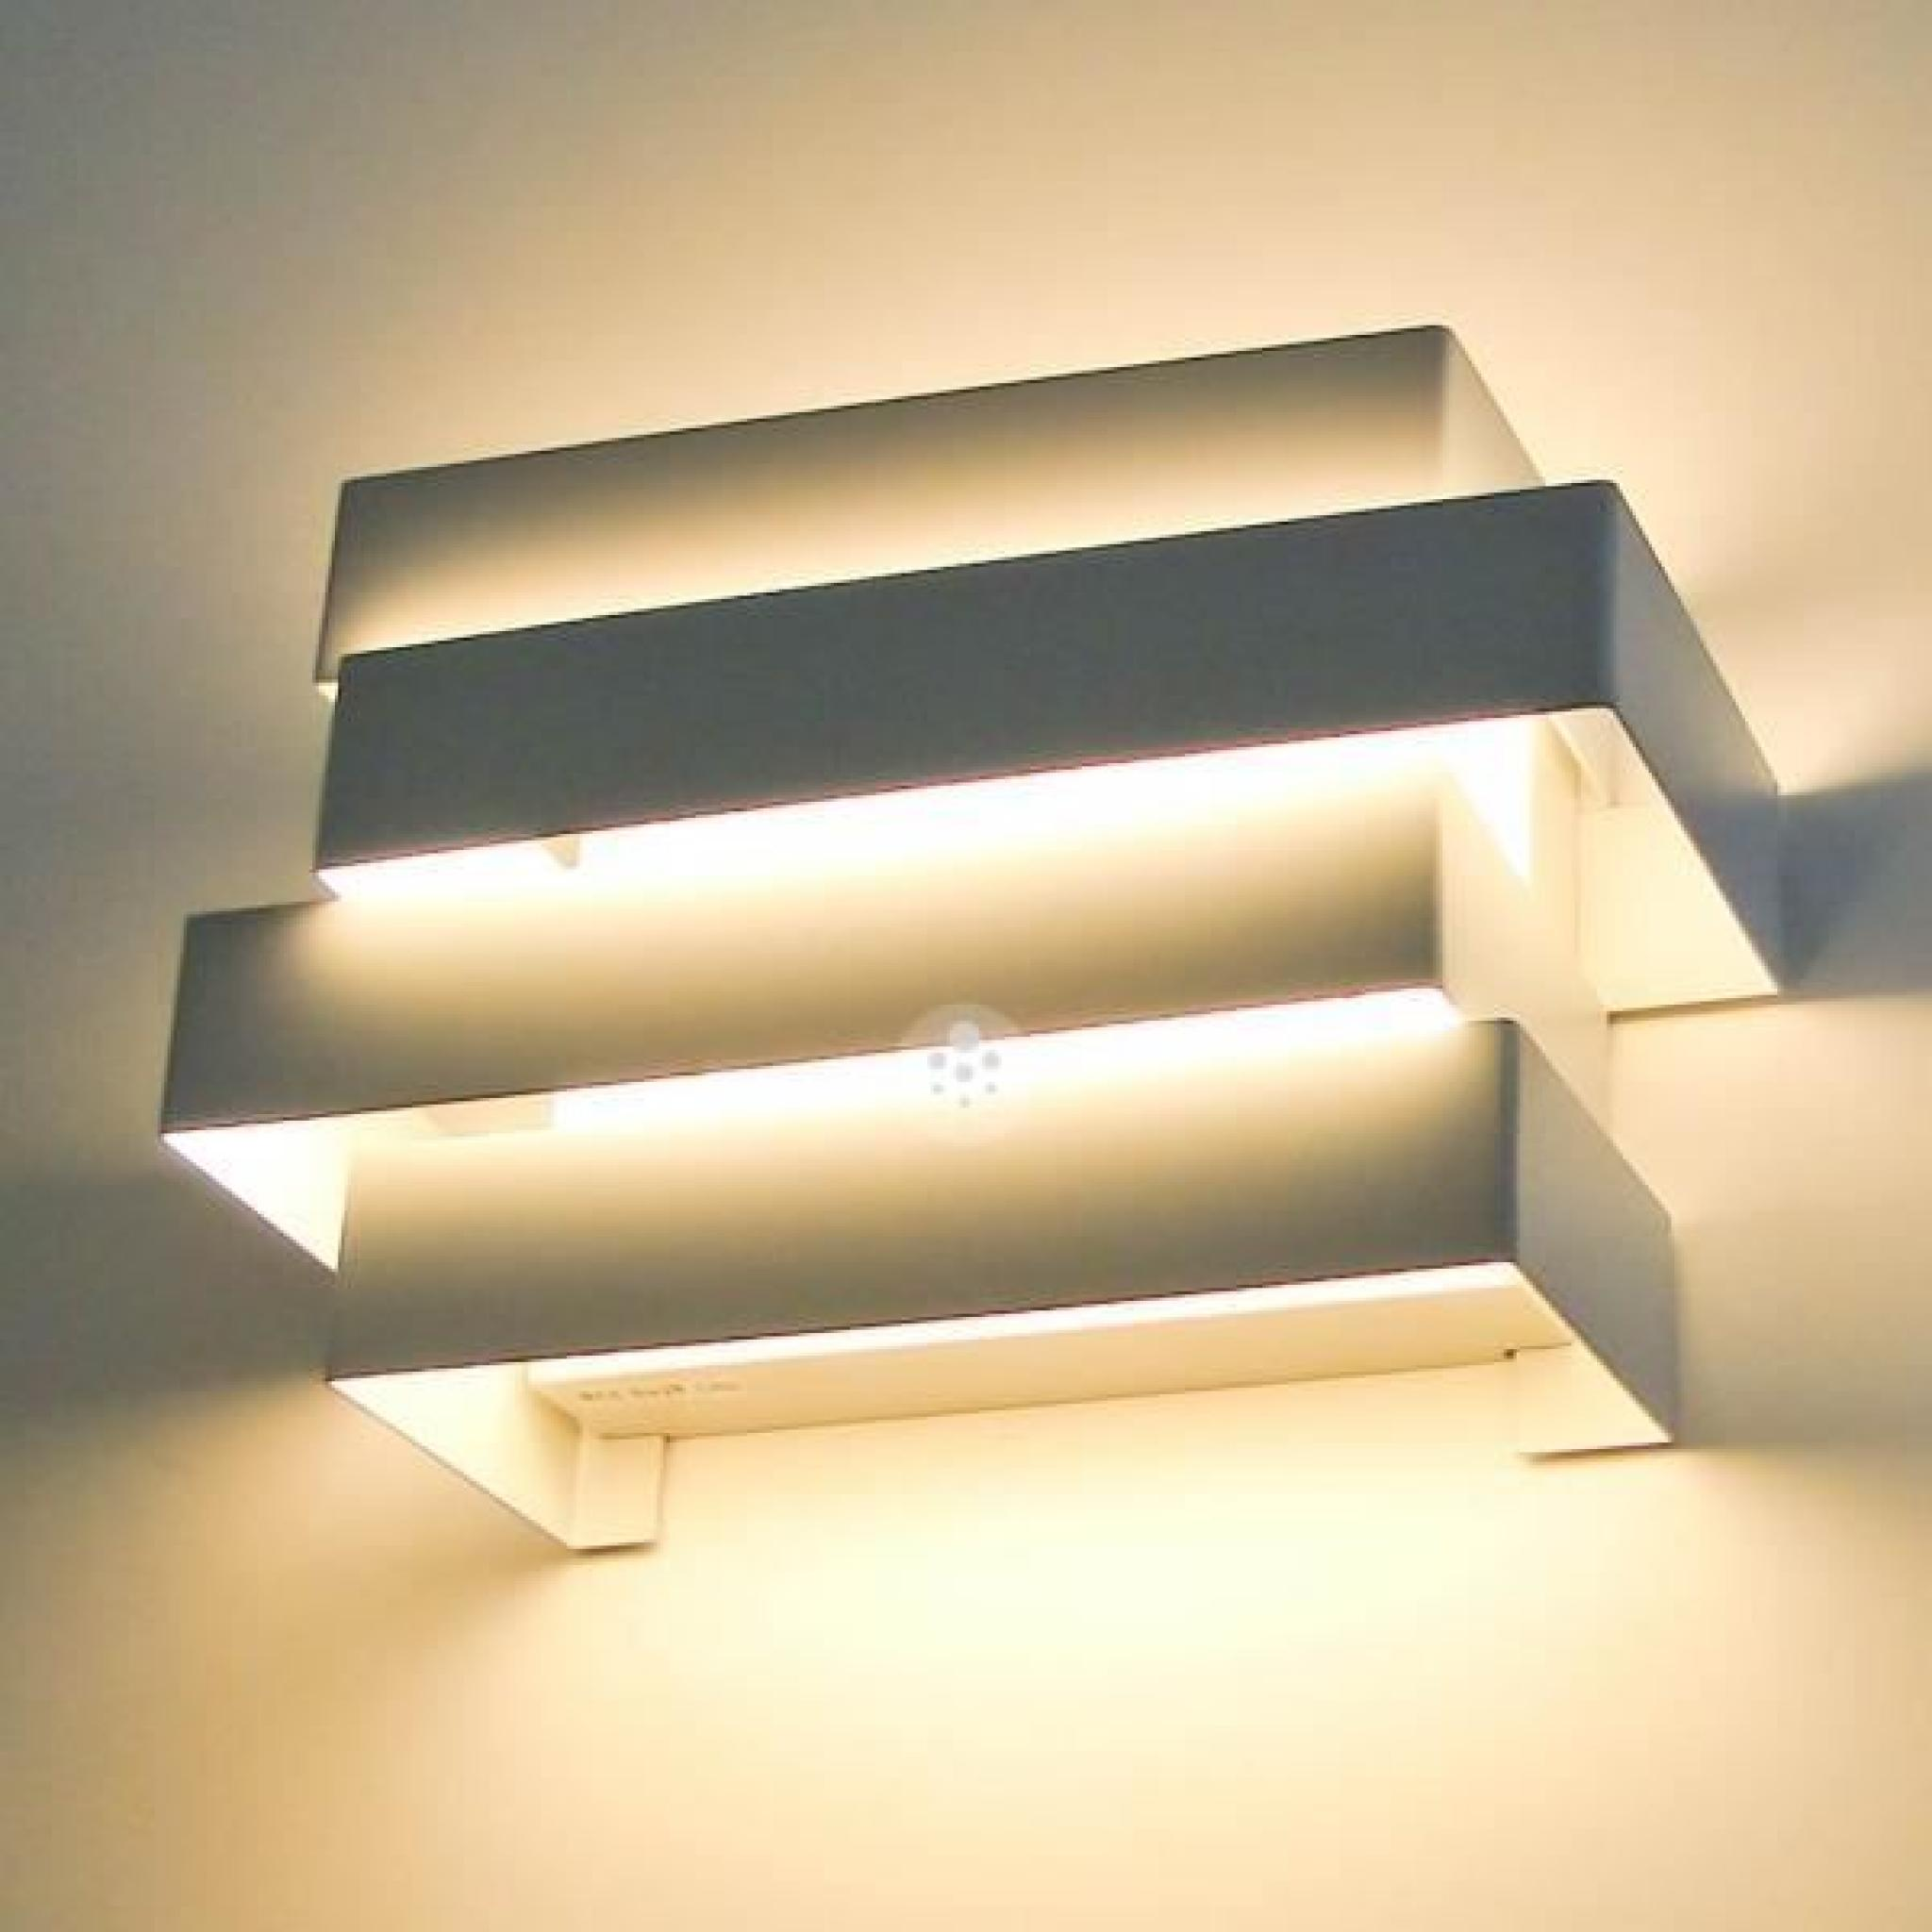 Applique led moderne design scala 6x1w achat vente - Applique murale pas chere ...